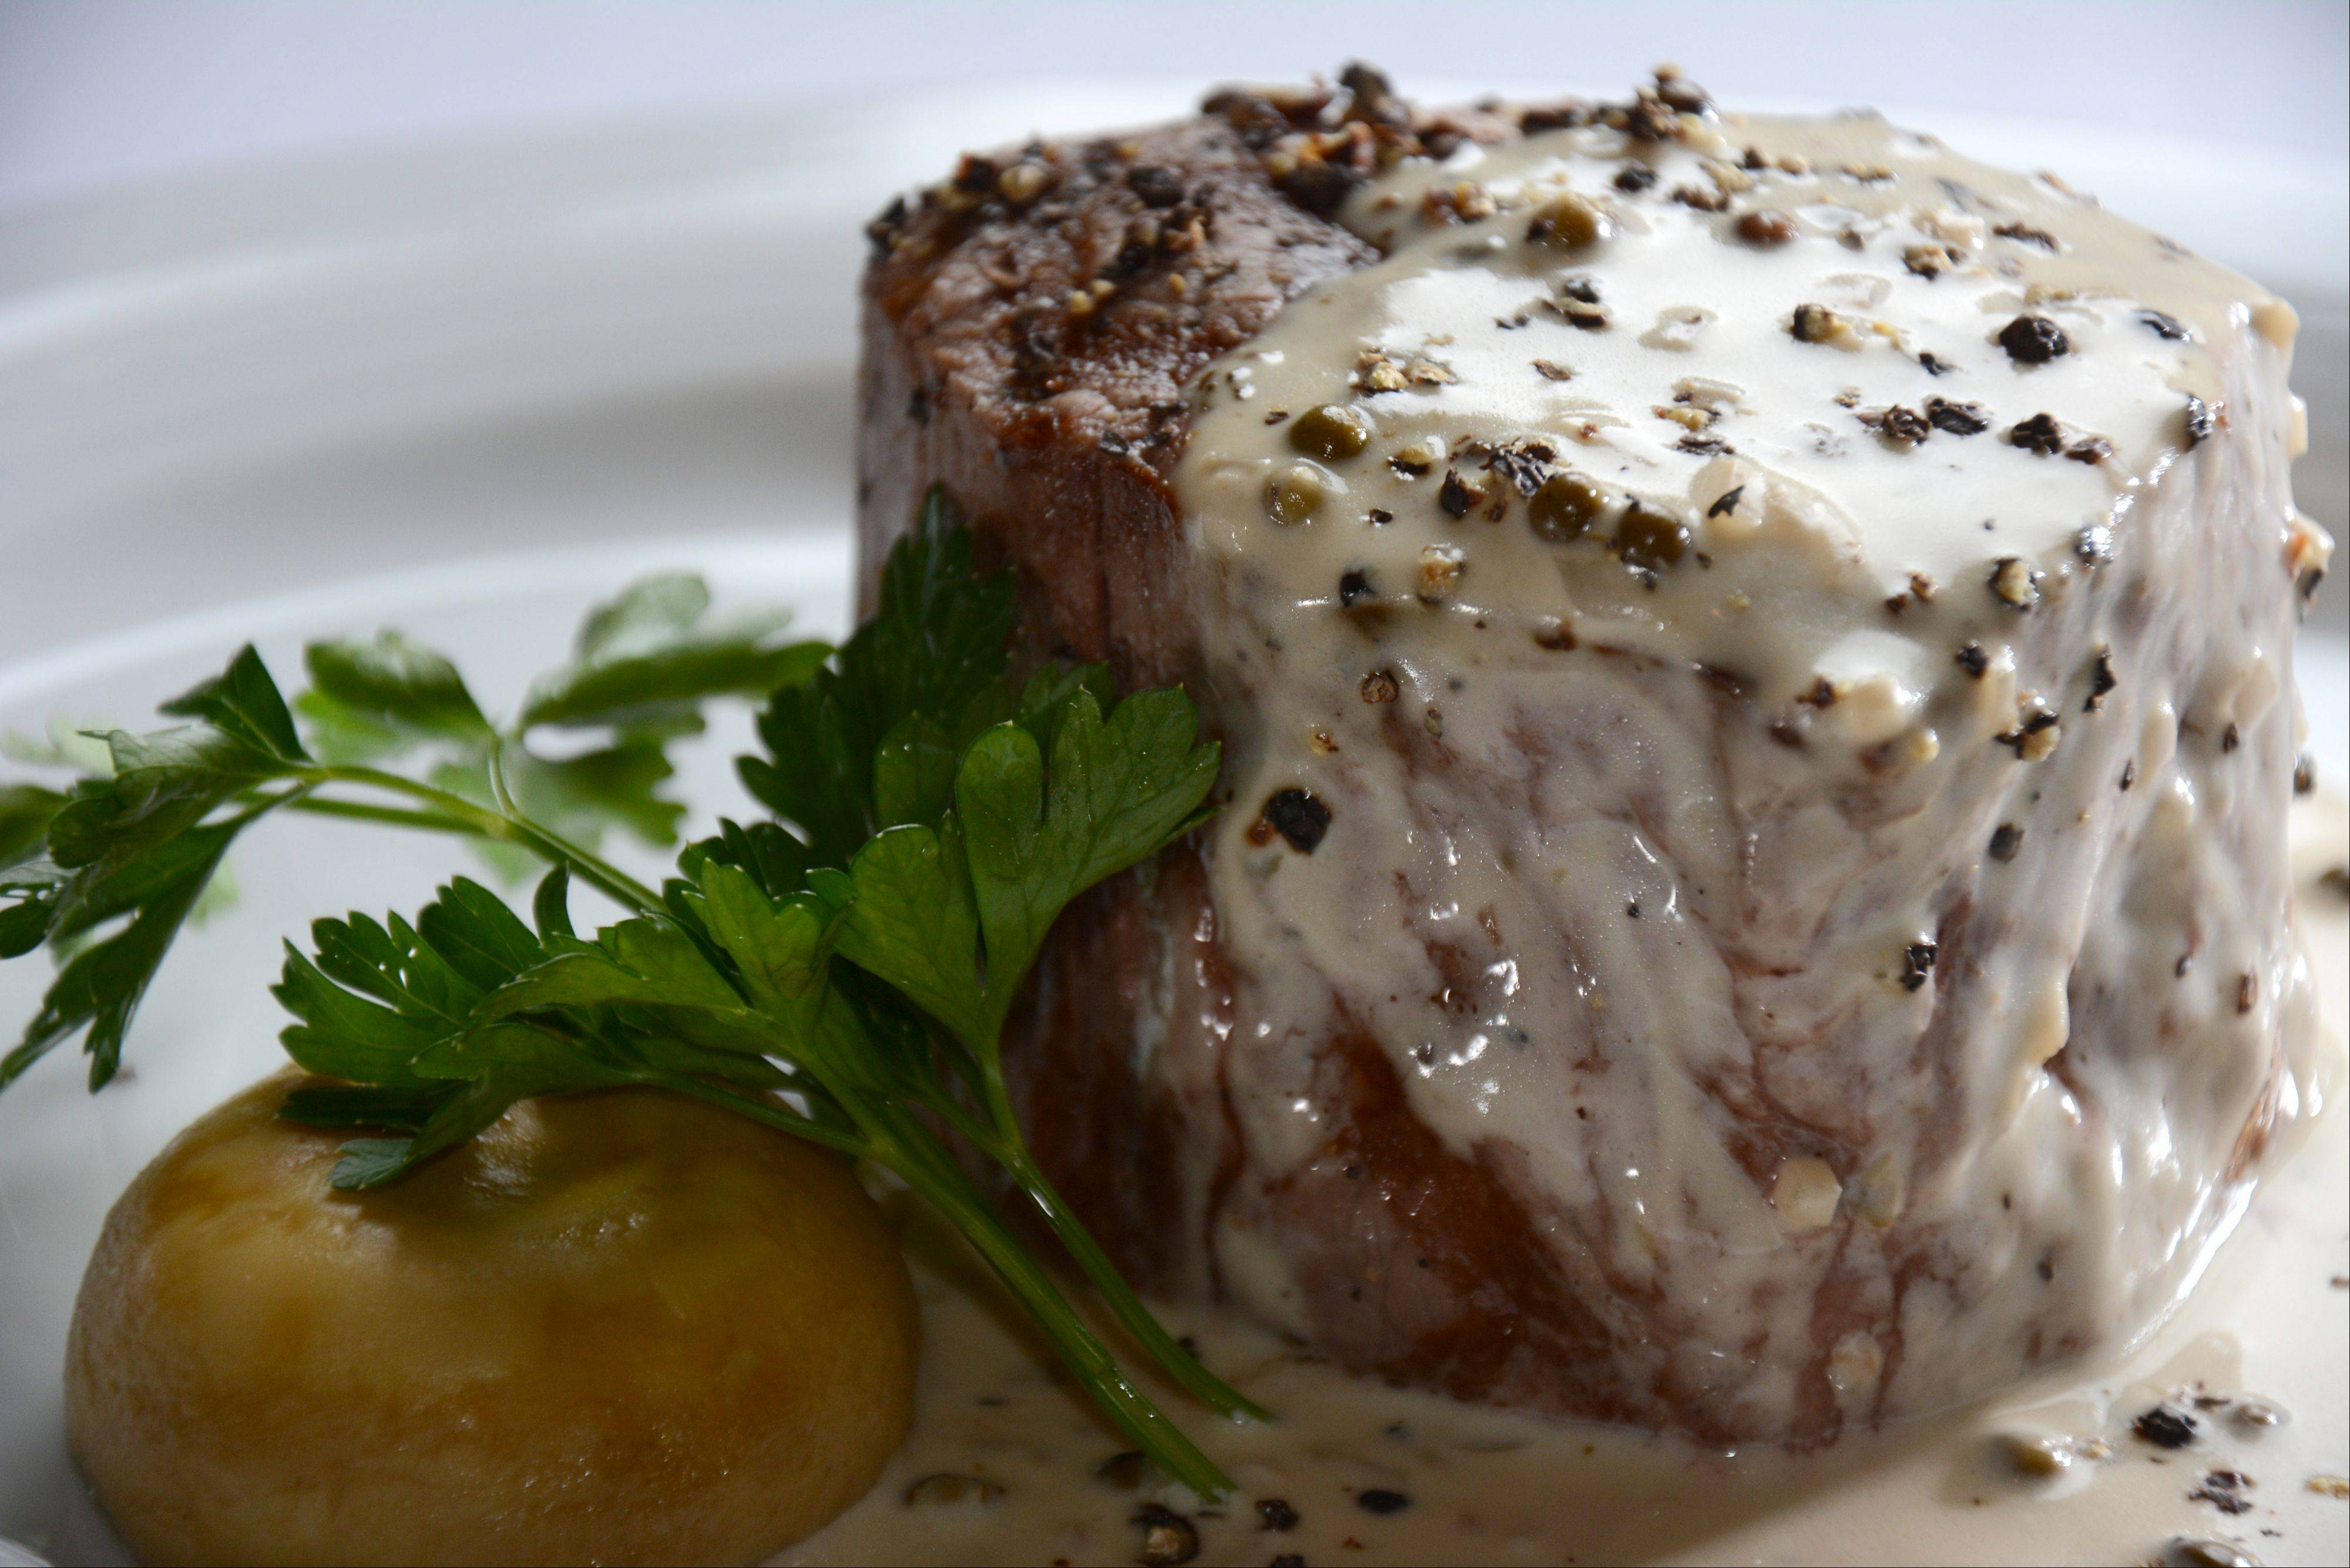 Filet au poivre is one of the many fine cuts of beef at Vidalia Steakhouse in Schaumburg.